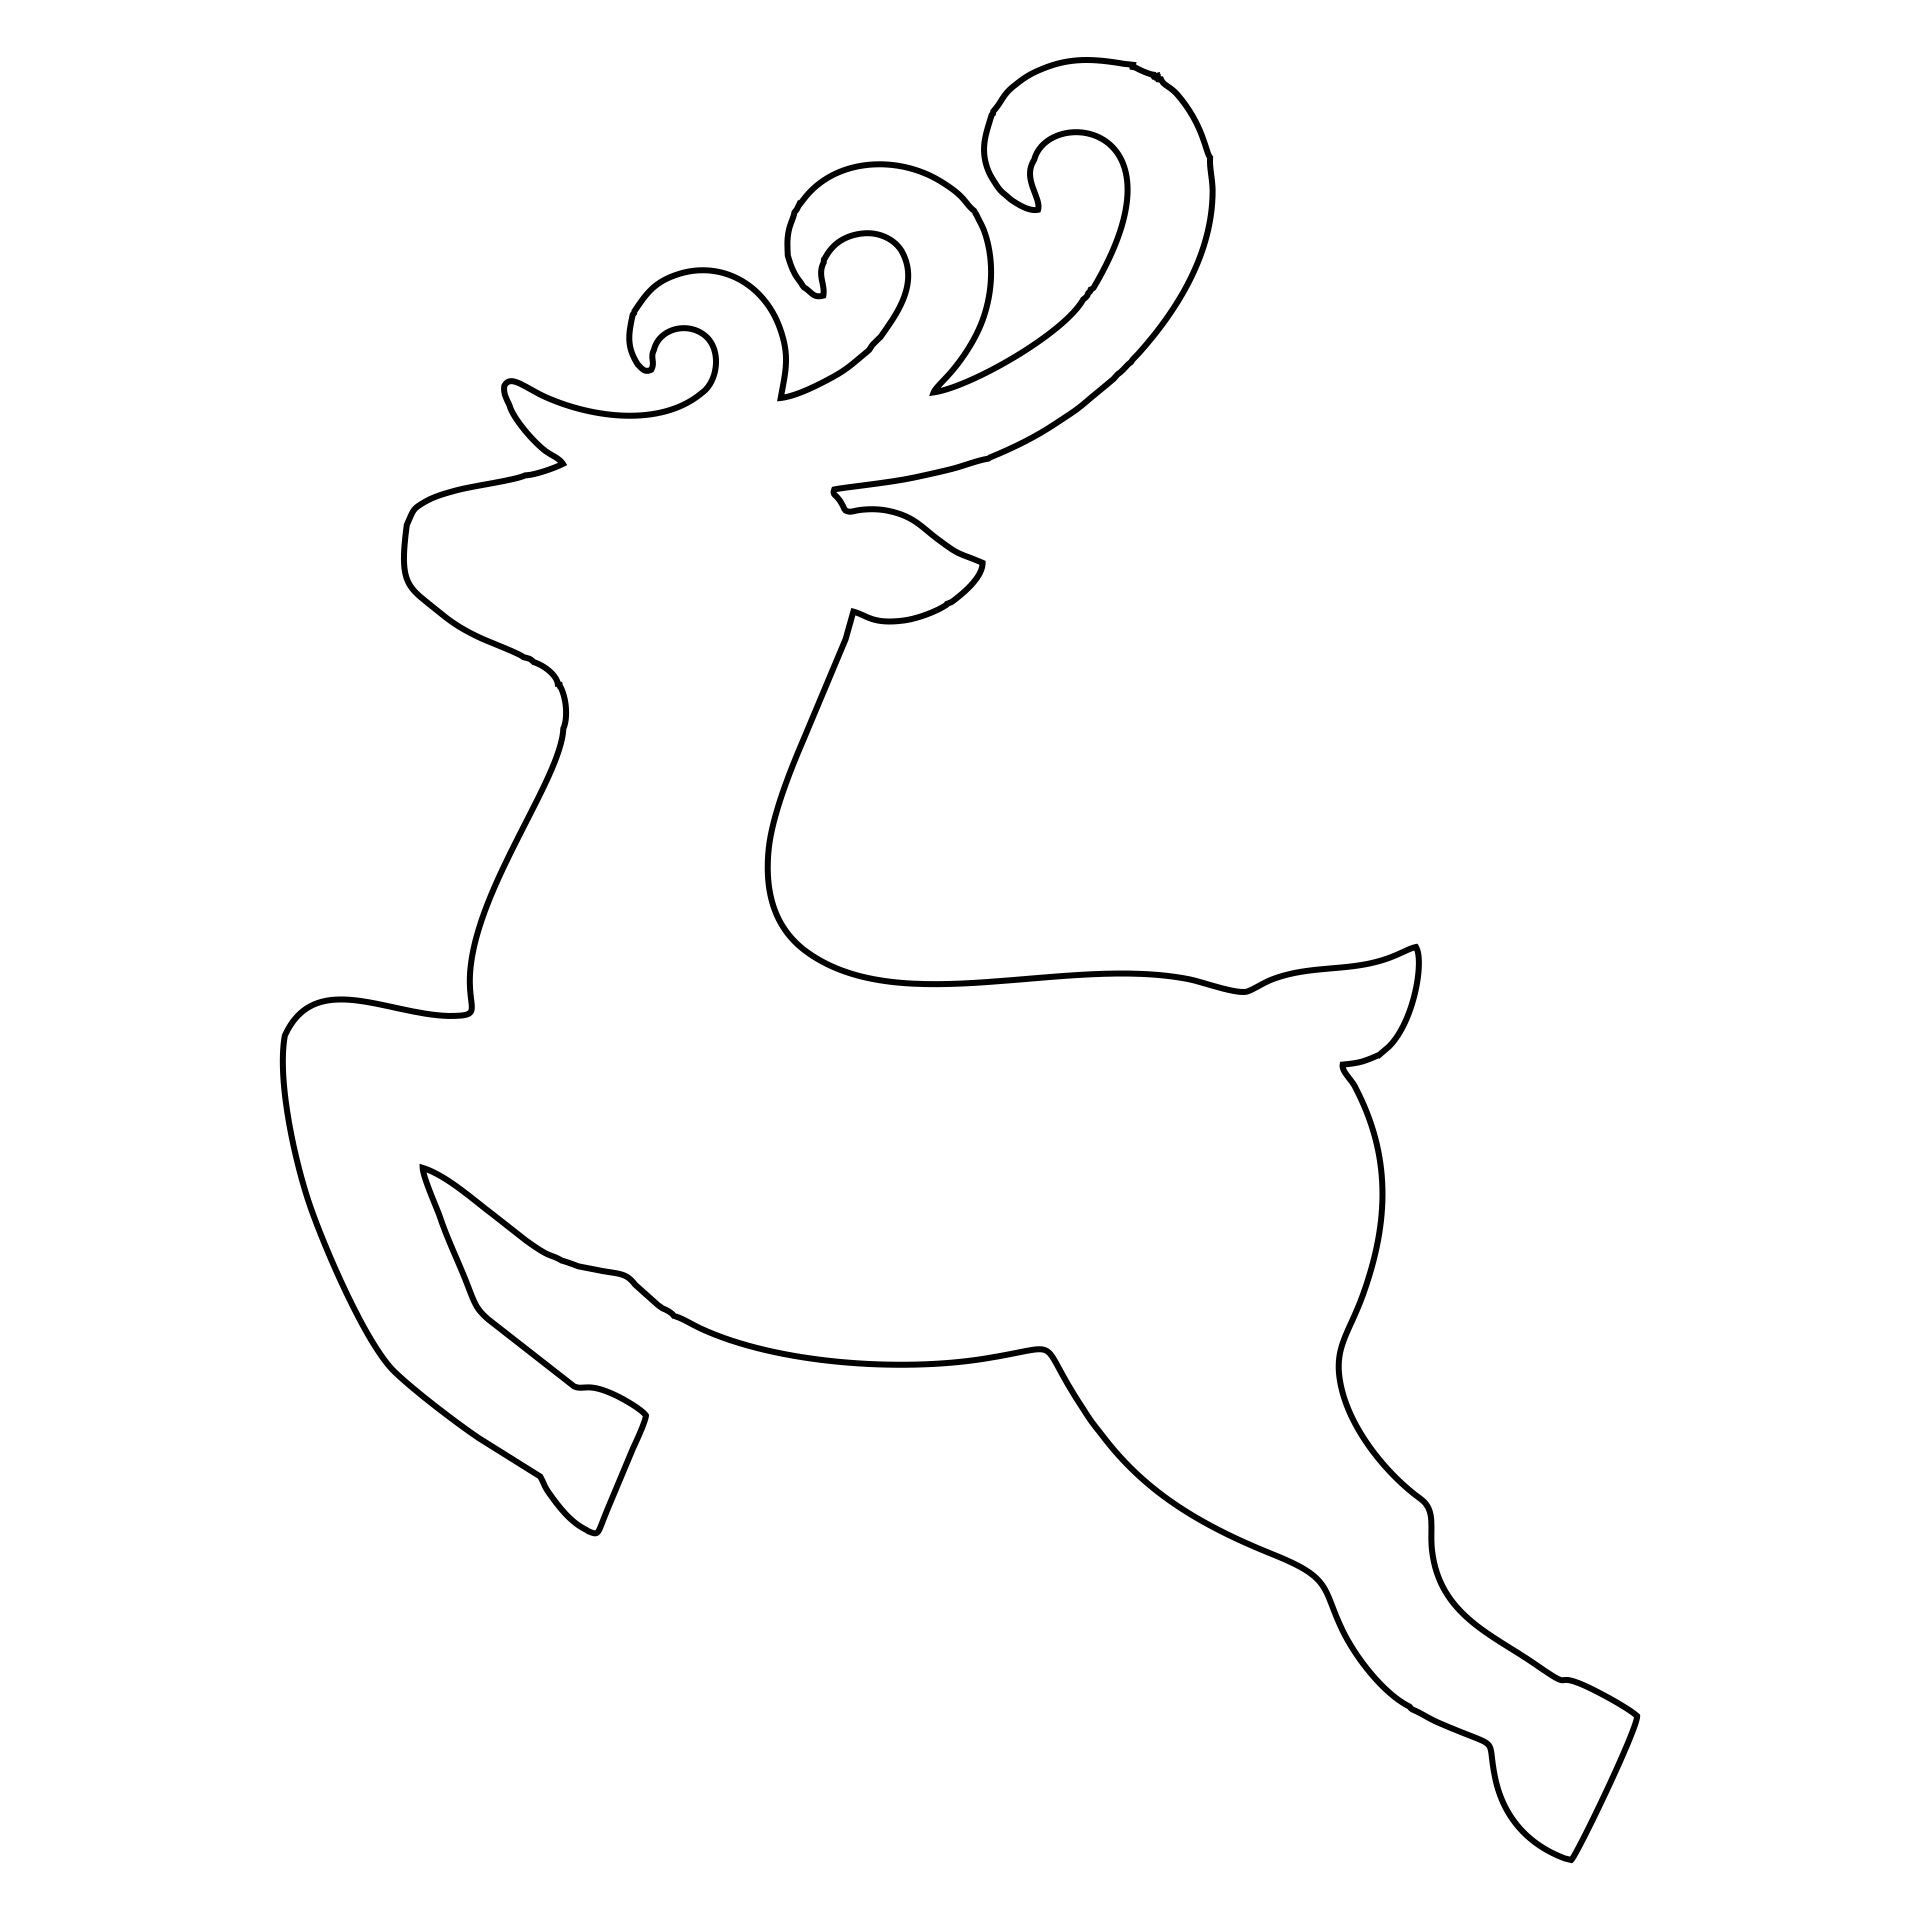 8 Best Images of Printable Templates Christmas Sleigh ...